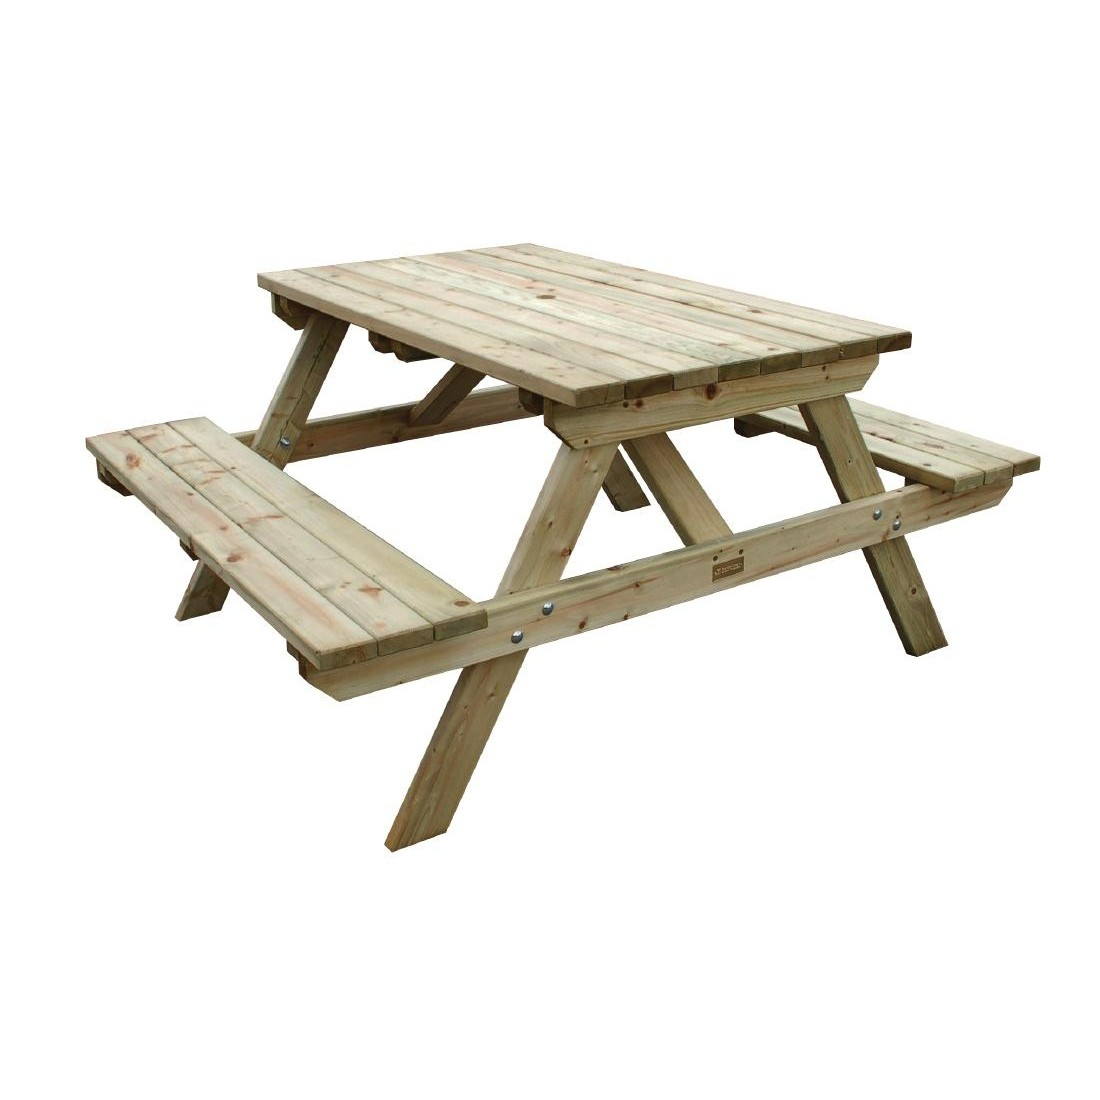 Incredible Wooden Picnic Bench 6 Seater Gmtry Best Dining Table And Chair Ideas Images Gmtryco